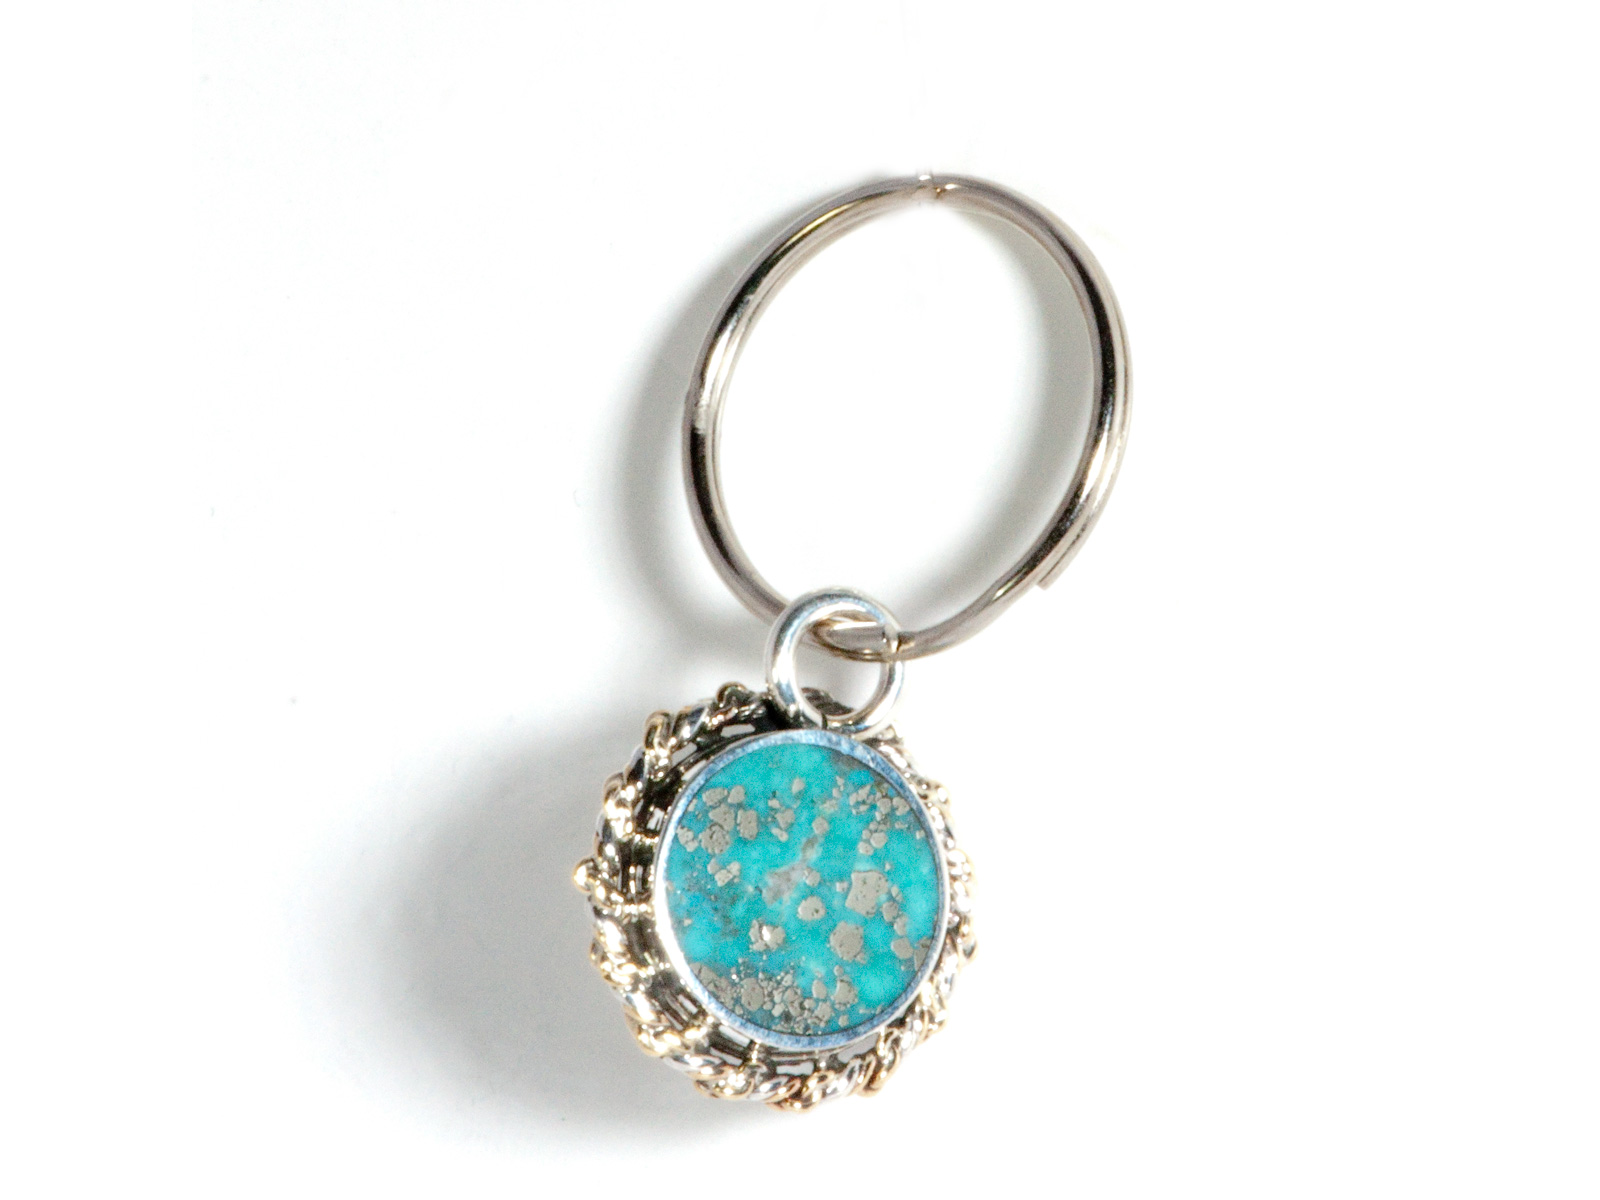 Turquoise Coin Key Chain